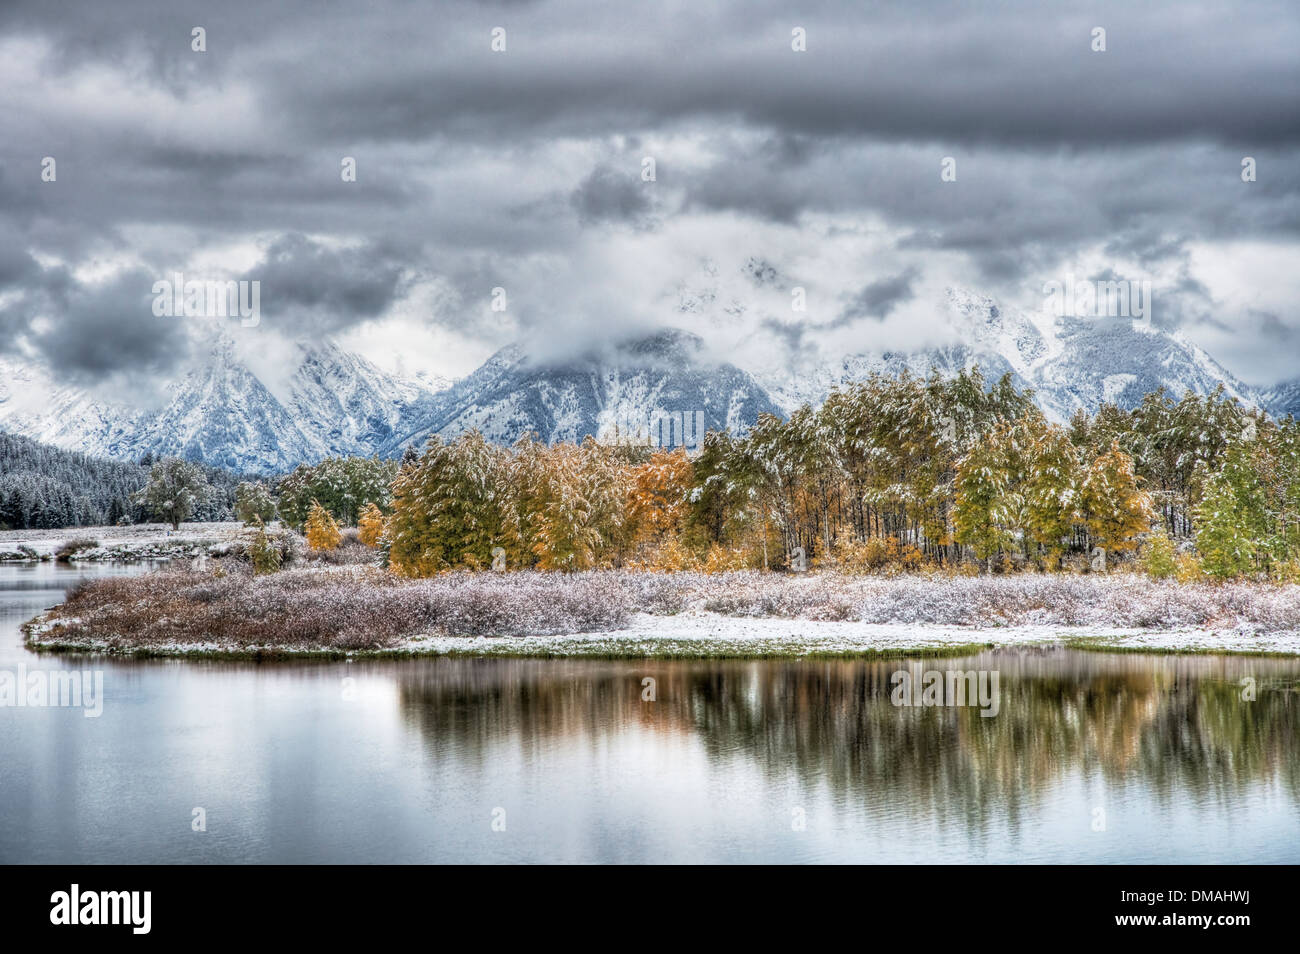 Oxbow Bend with Autumn (Fall) colour and early snow Grand Tetons National Park Wyoming. USA LA006577 - Stock Image